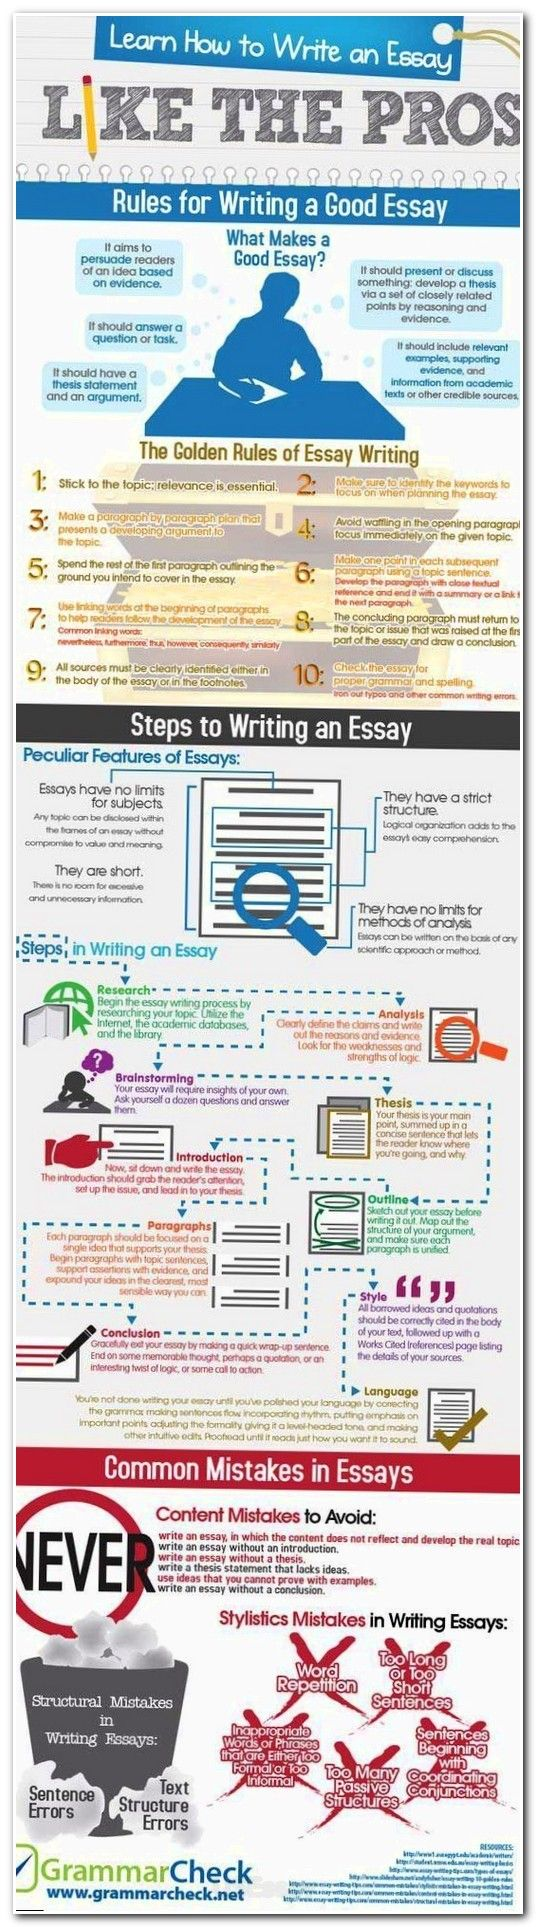 best apa title page example ideas example of  laws of life essay topics essay speech topics music novel writing ideas tips